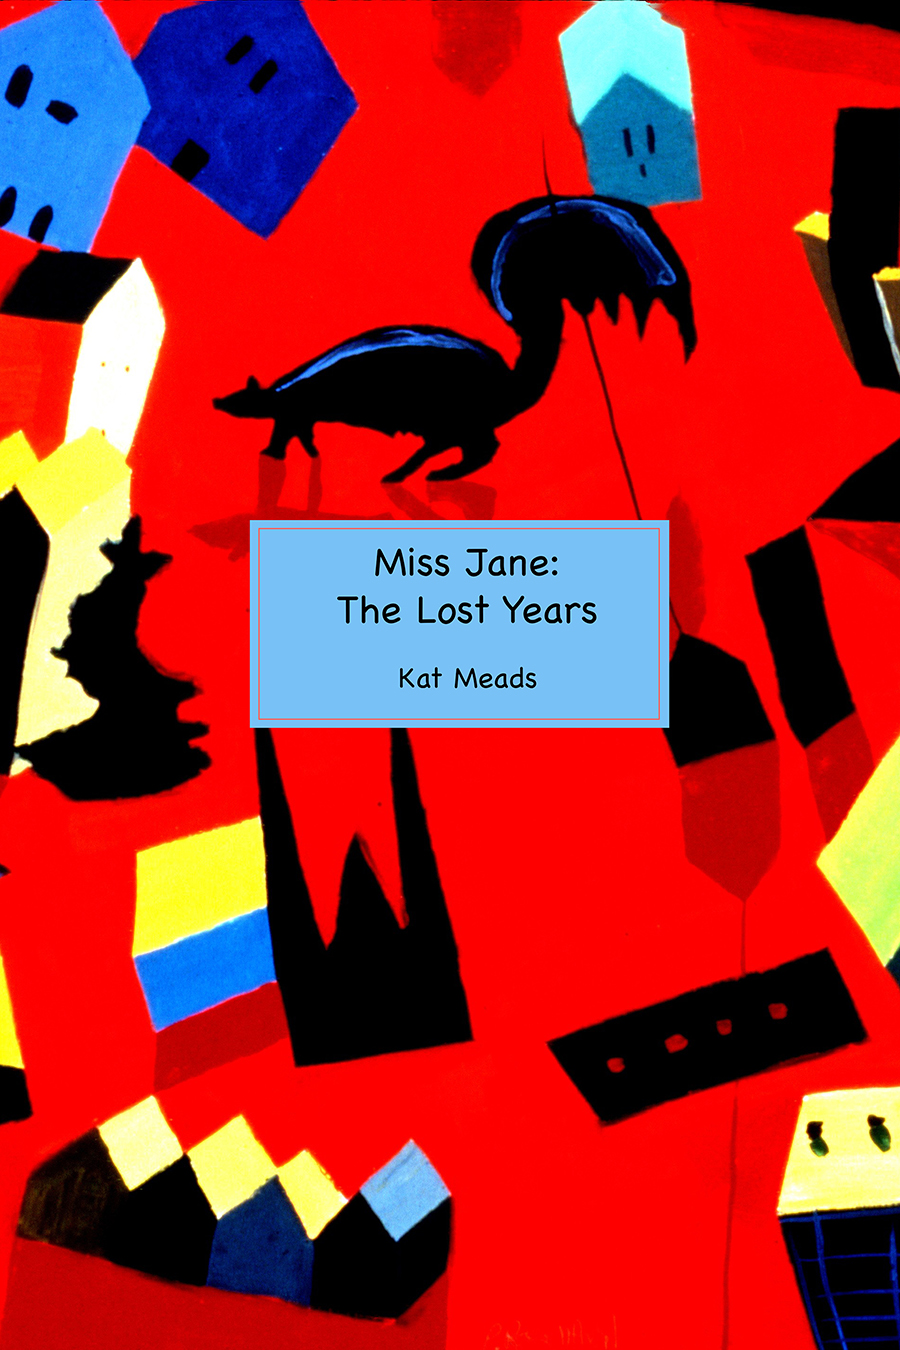 Miss Jane: The Lost Years